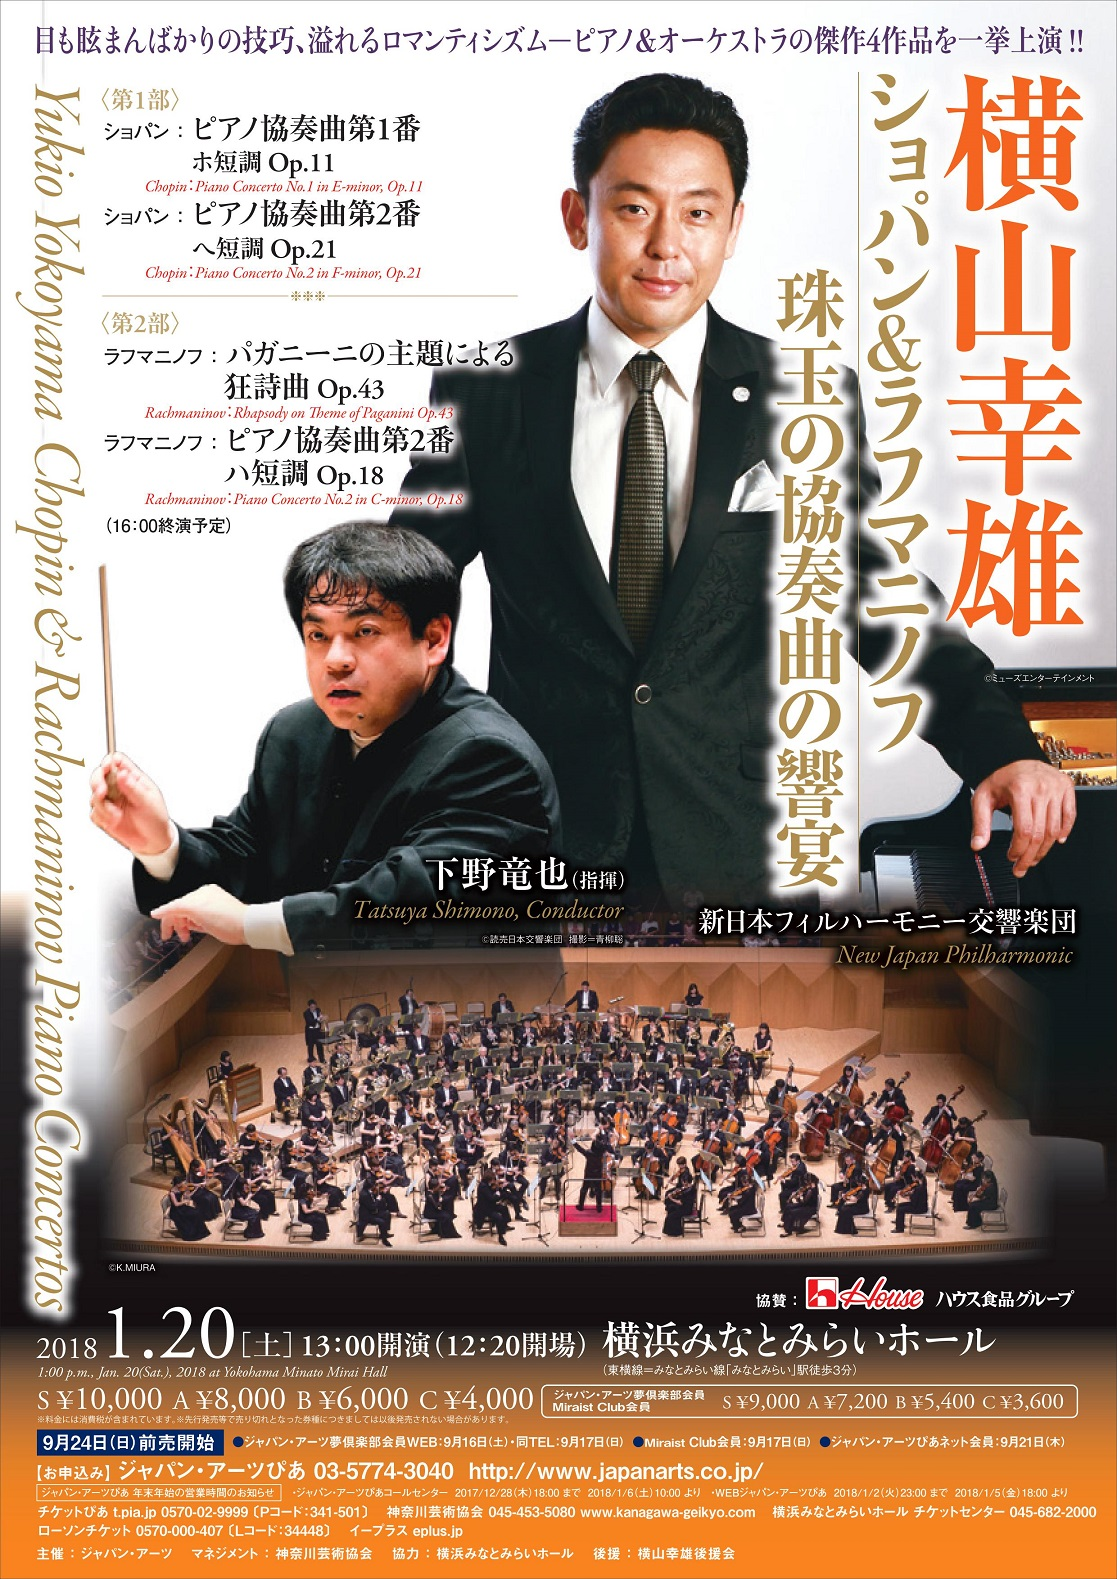 This week's concert (15 January – 21 January, 2018)